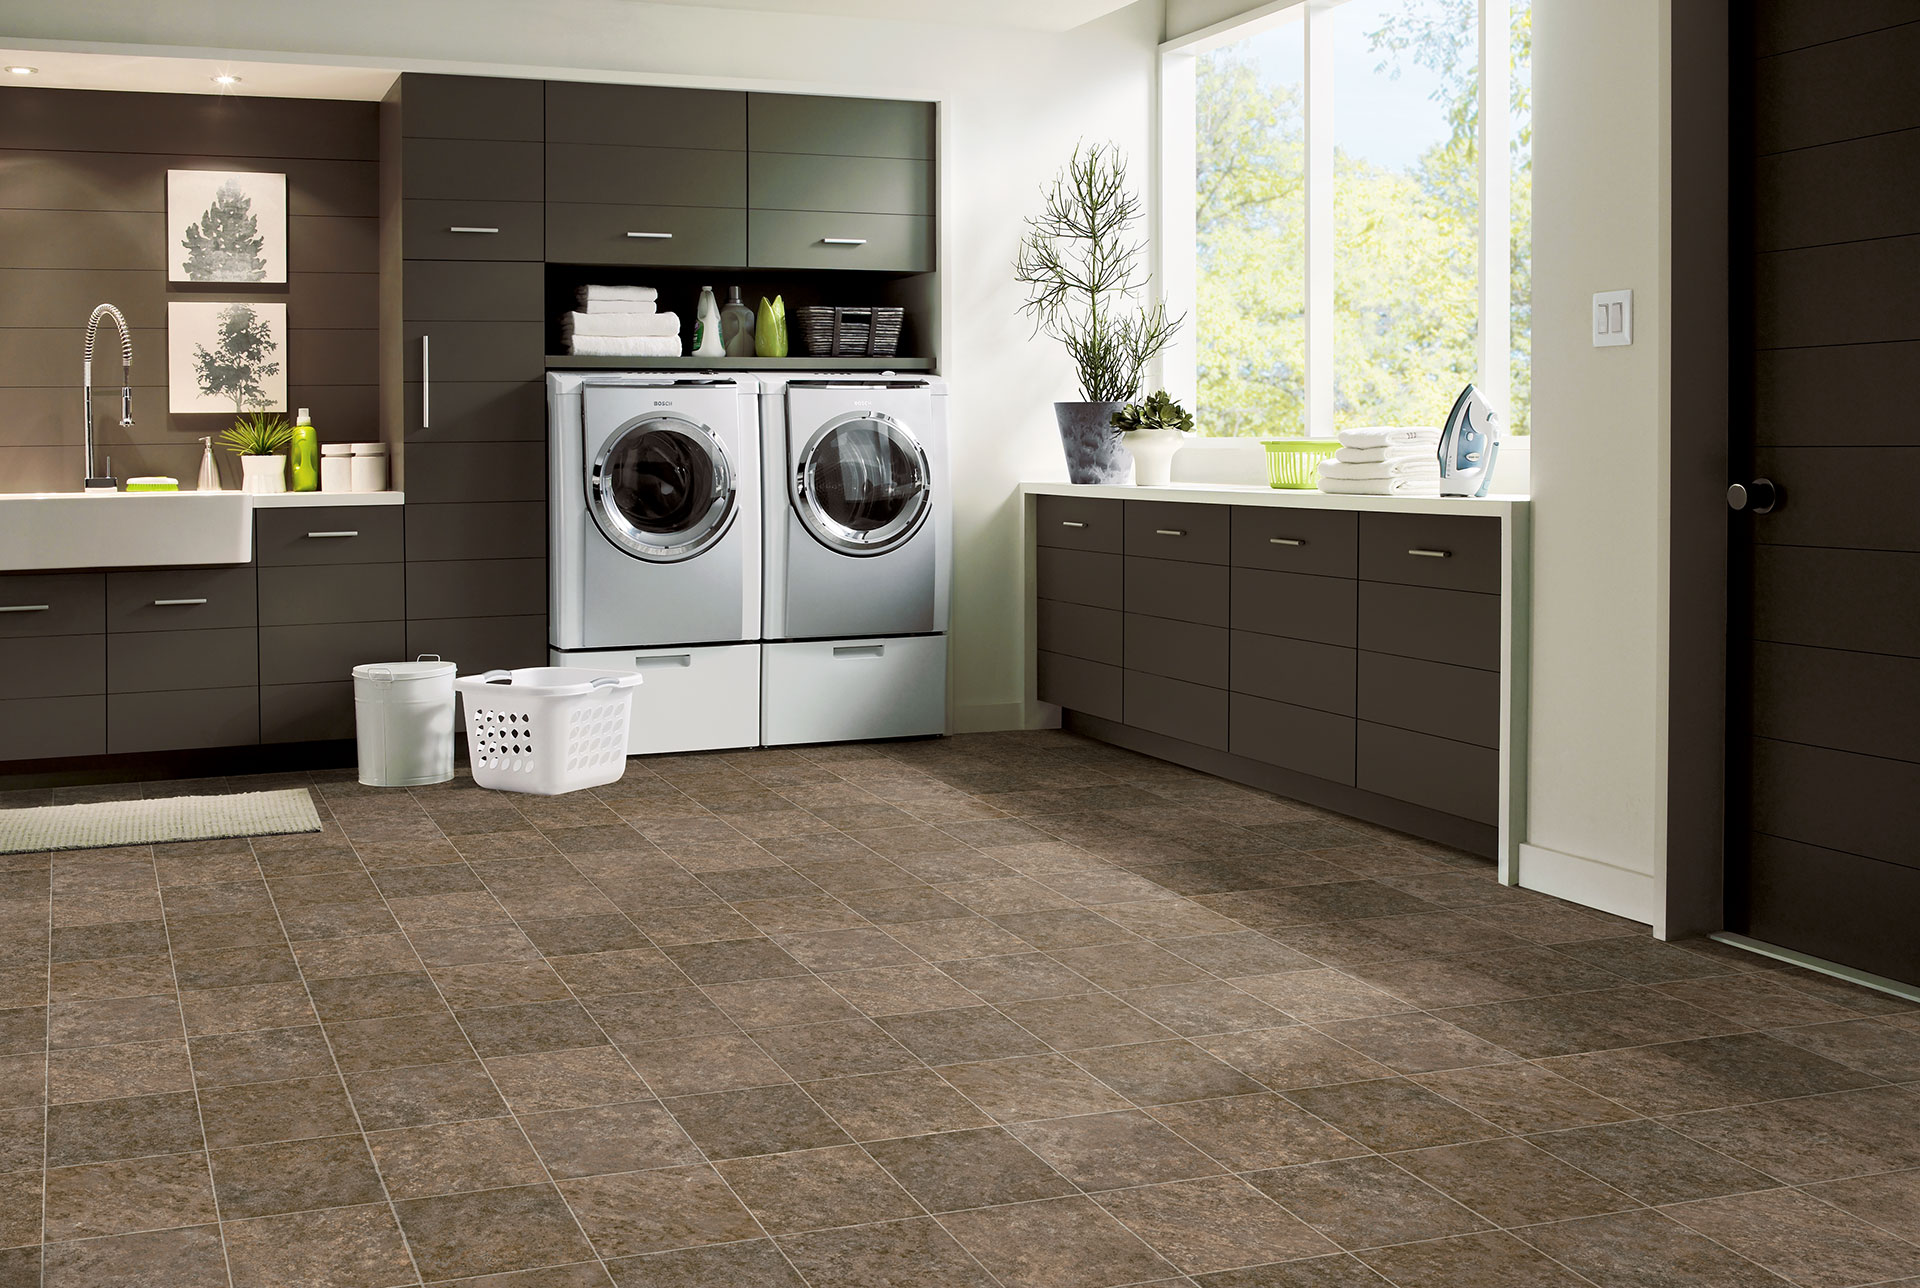 Top 28 linoleum flooring companies vinyl floors for Vinyl flooring companies